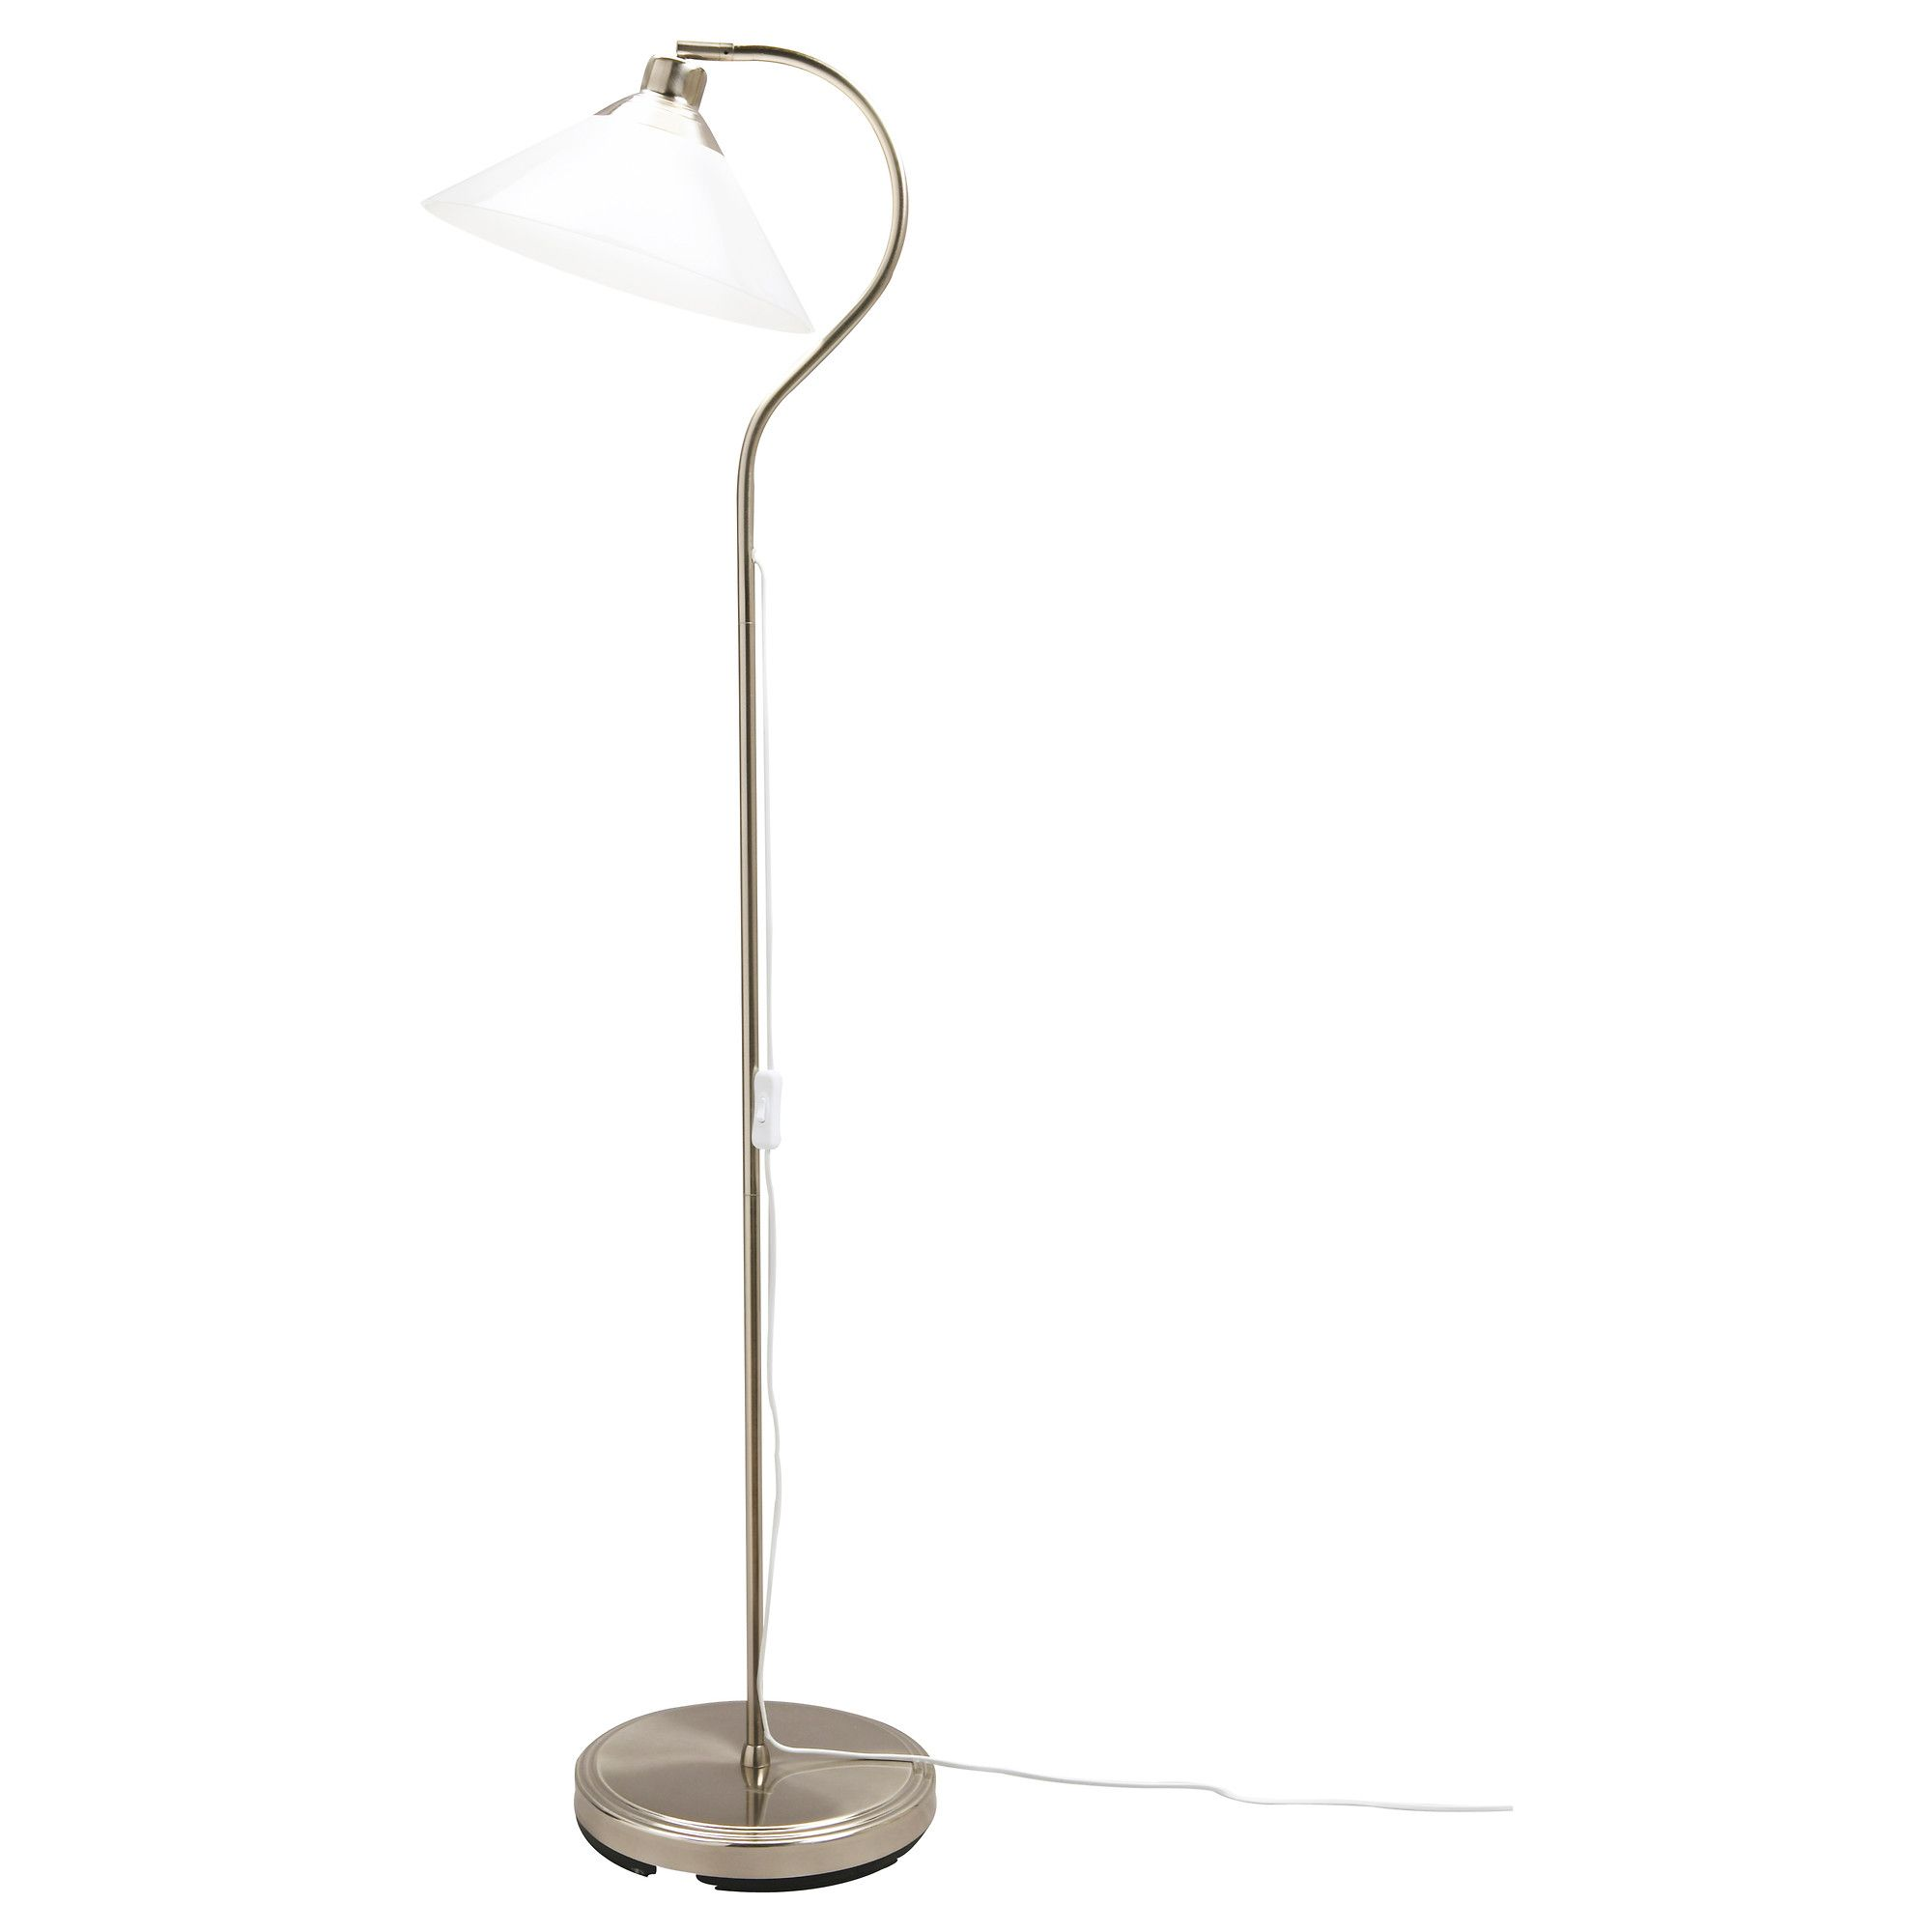 Ikea Reading Lamp Another Cute And Affordable Lamp The Kroby Floor Reading Lamp By